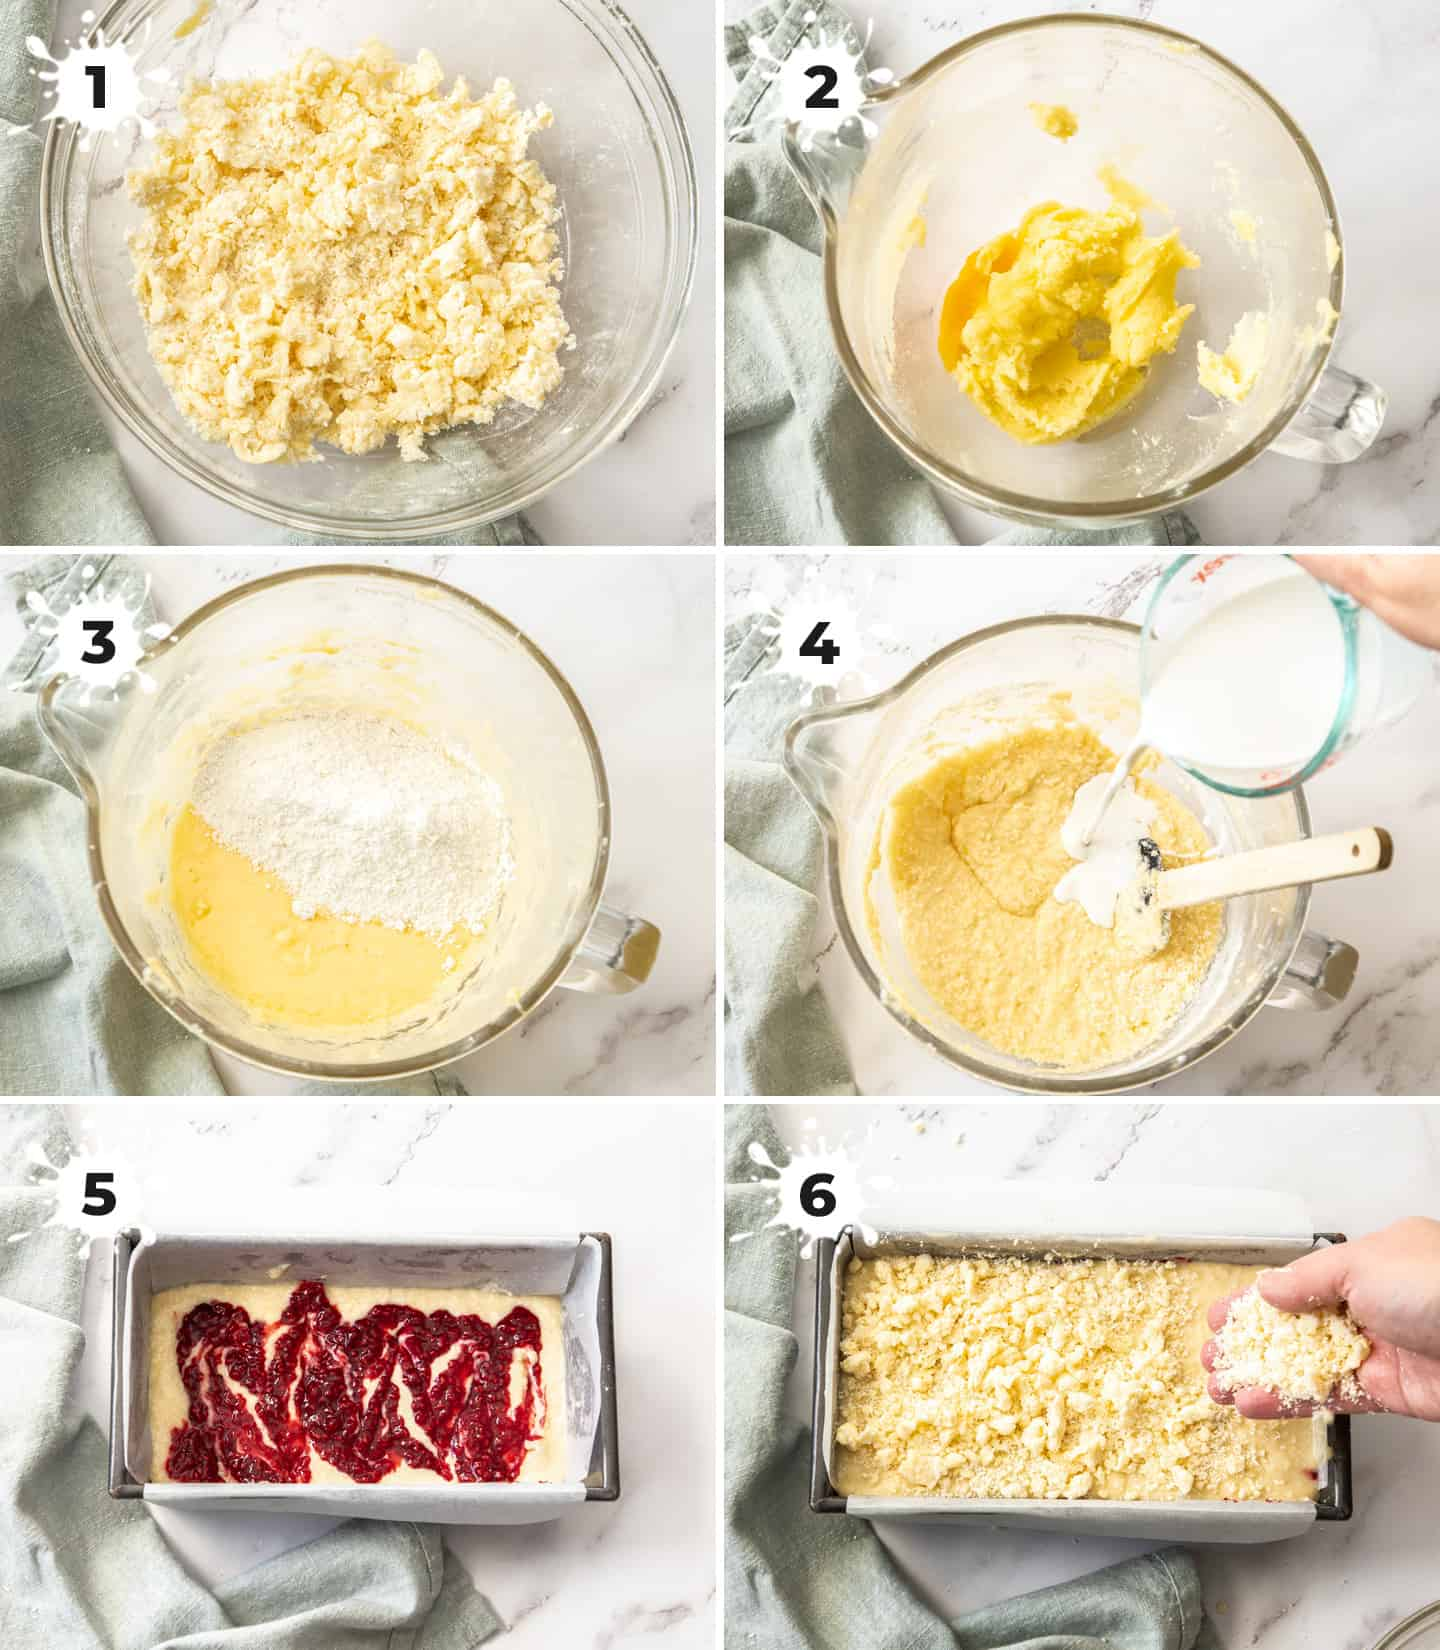 A collage of 6 images showing the steps to making the cake.